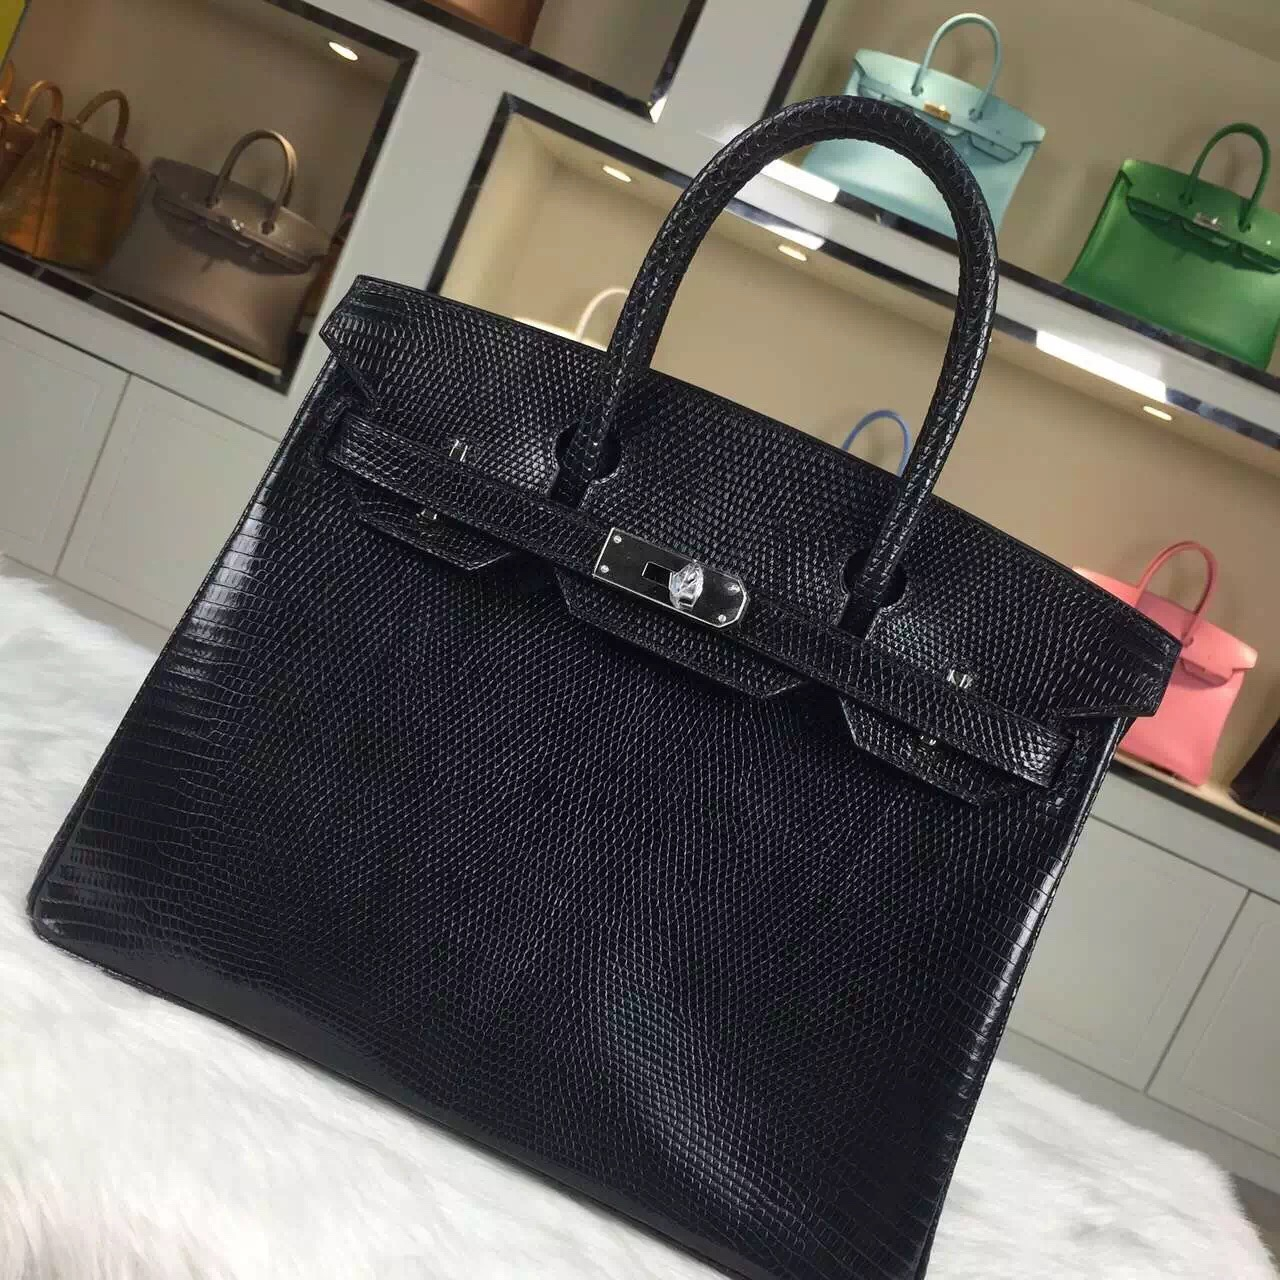 High Quality Hermes Black HCP Lizard Skin Leather Birkin Bag 30CM Silver Hardware